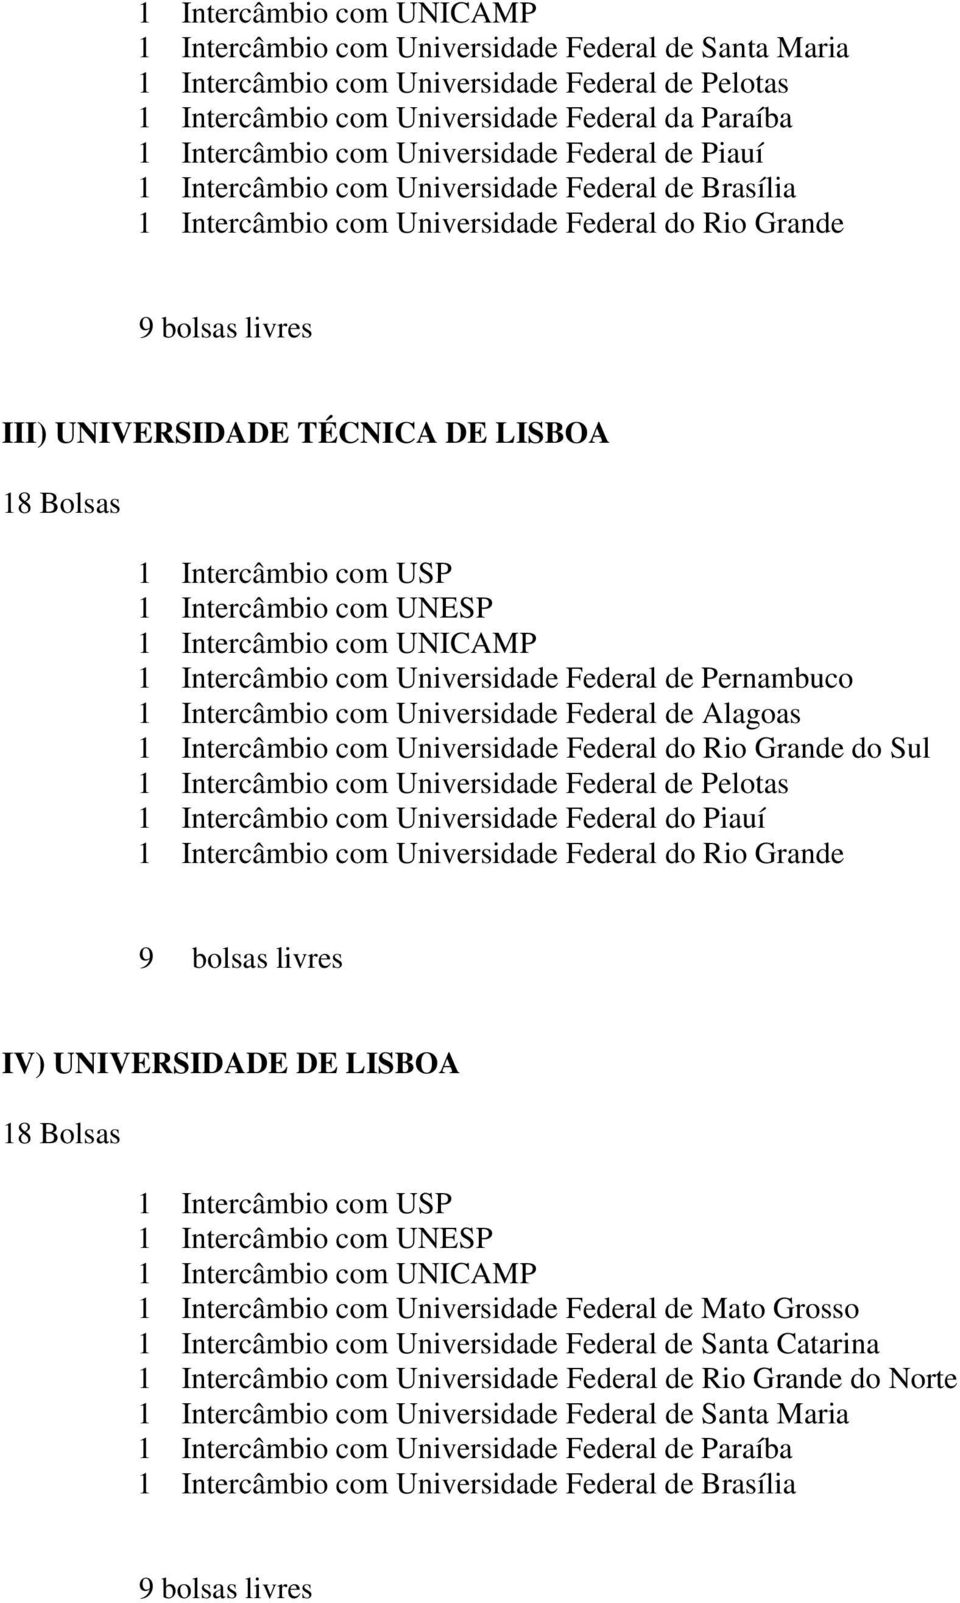 Intercâmbio com UNICAMP 1 Intercâmbio com Universidade Federal de Pernambuco 1 Intercâmbio com Universidade Federal de Alagoas 1 Intercâmbio com Universidade Federal do Rio Grande do Sul 1